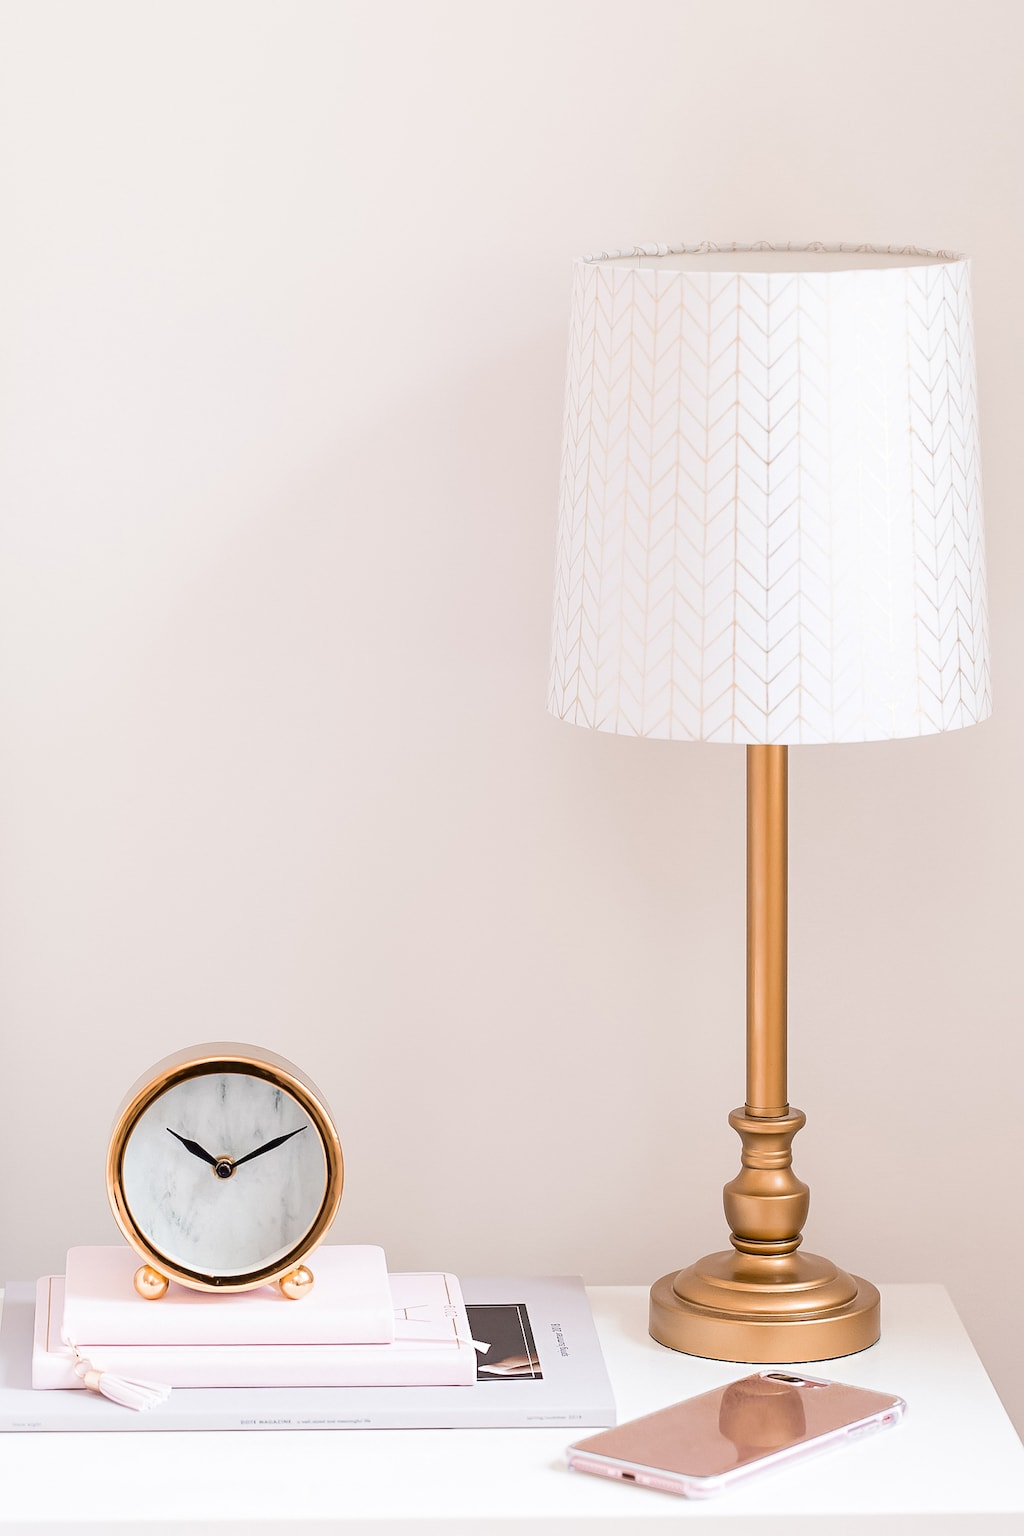 phone and clock on nightstand